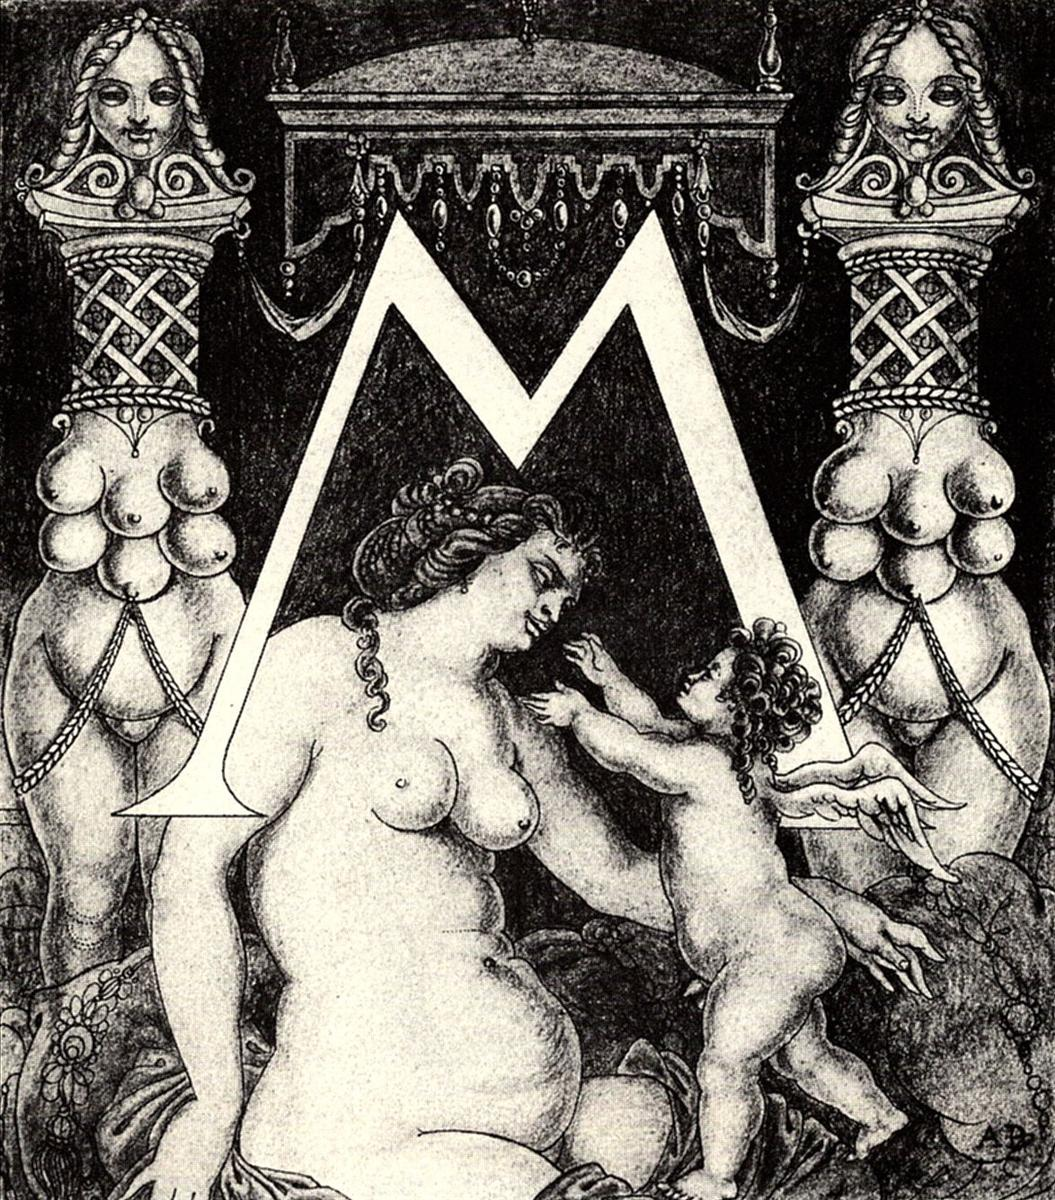 http://uploads3.wikipaintings.org/images/aubrey-beardsley/initial-m-for-ben-jonson-his-valpone.jpg!HD.jpg